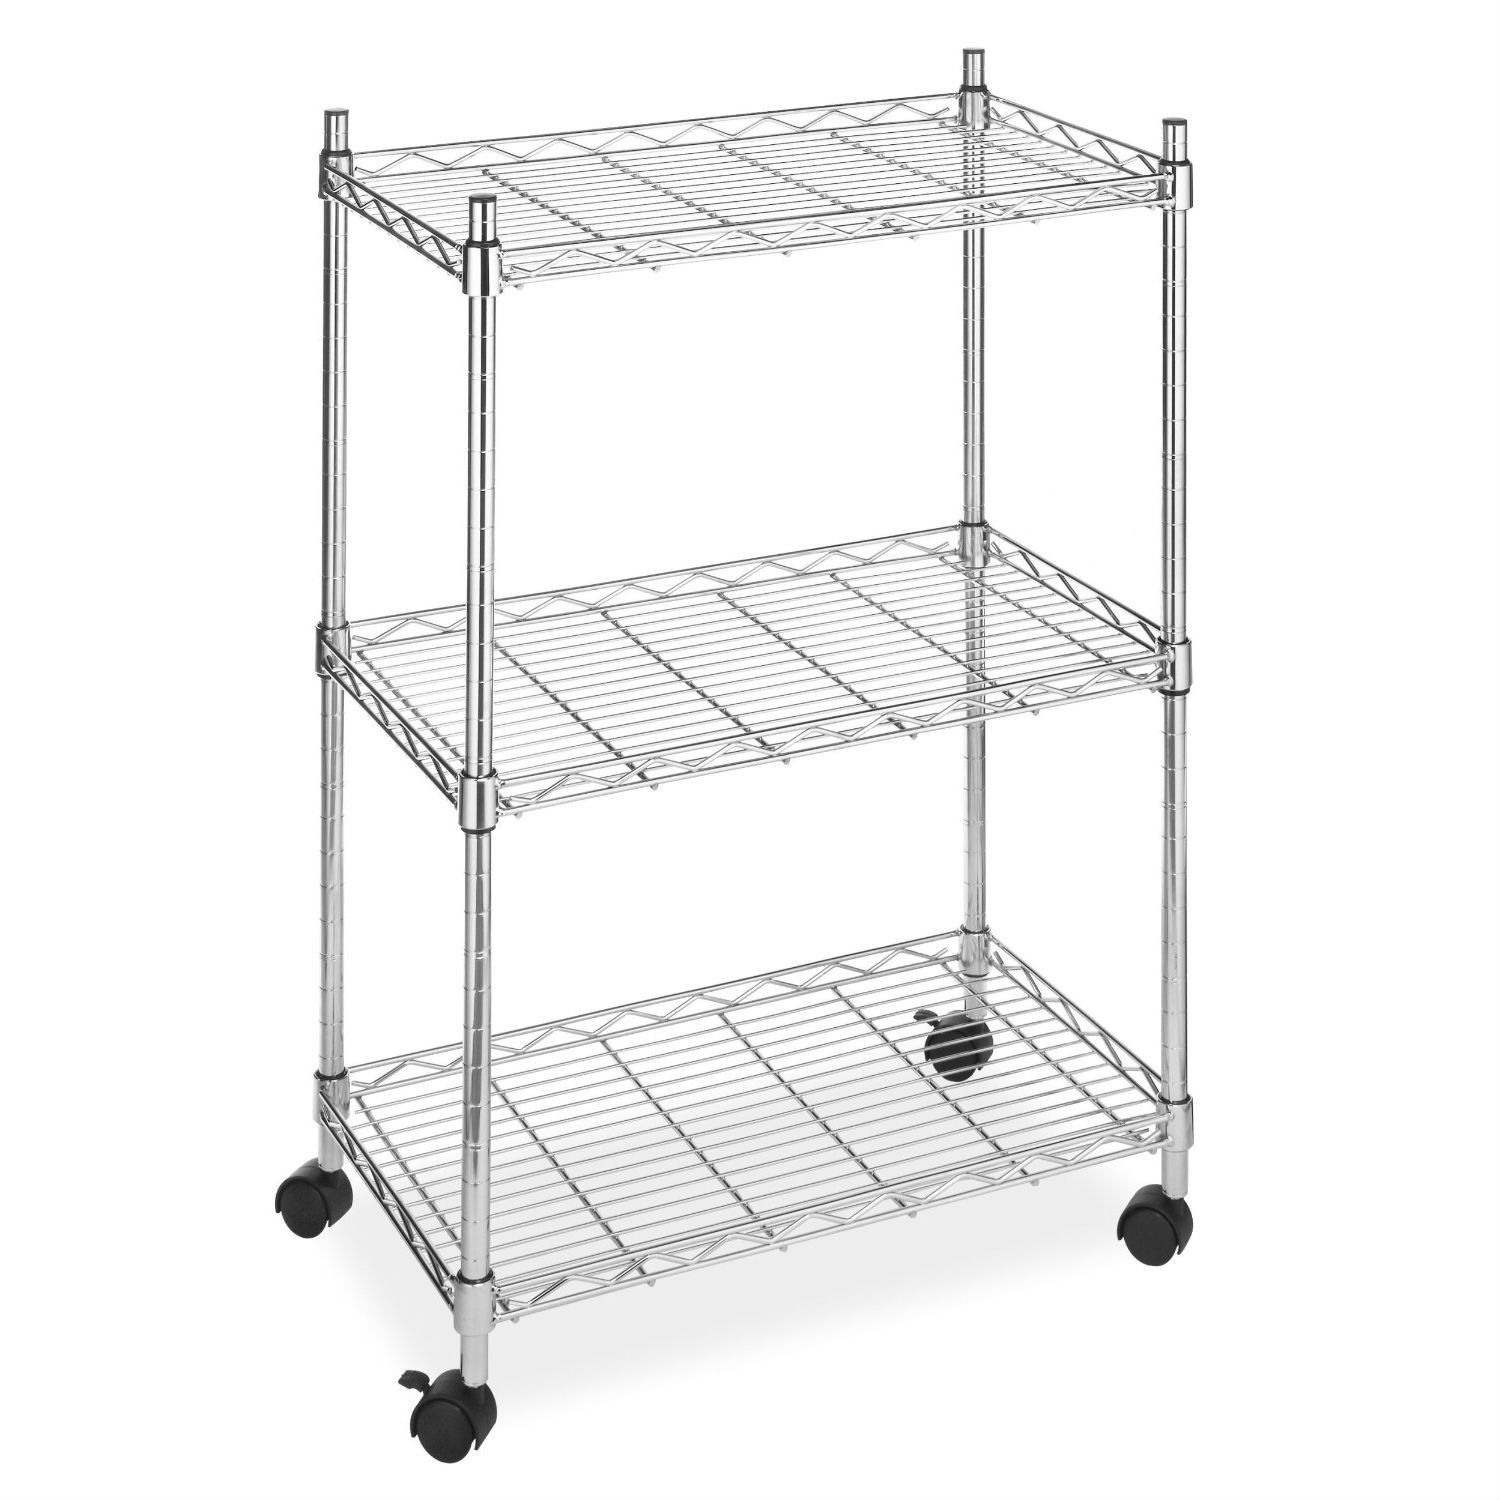 aefe1c09fca 3-Tier Metal Cart on Wheels for Kitchen Microwave Bathroom Garage ...